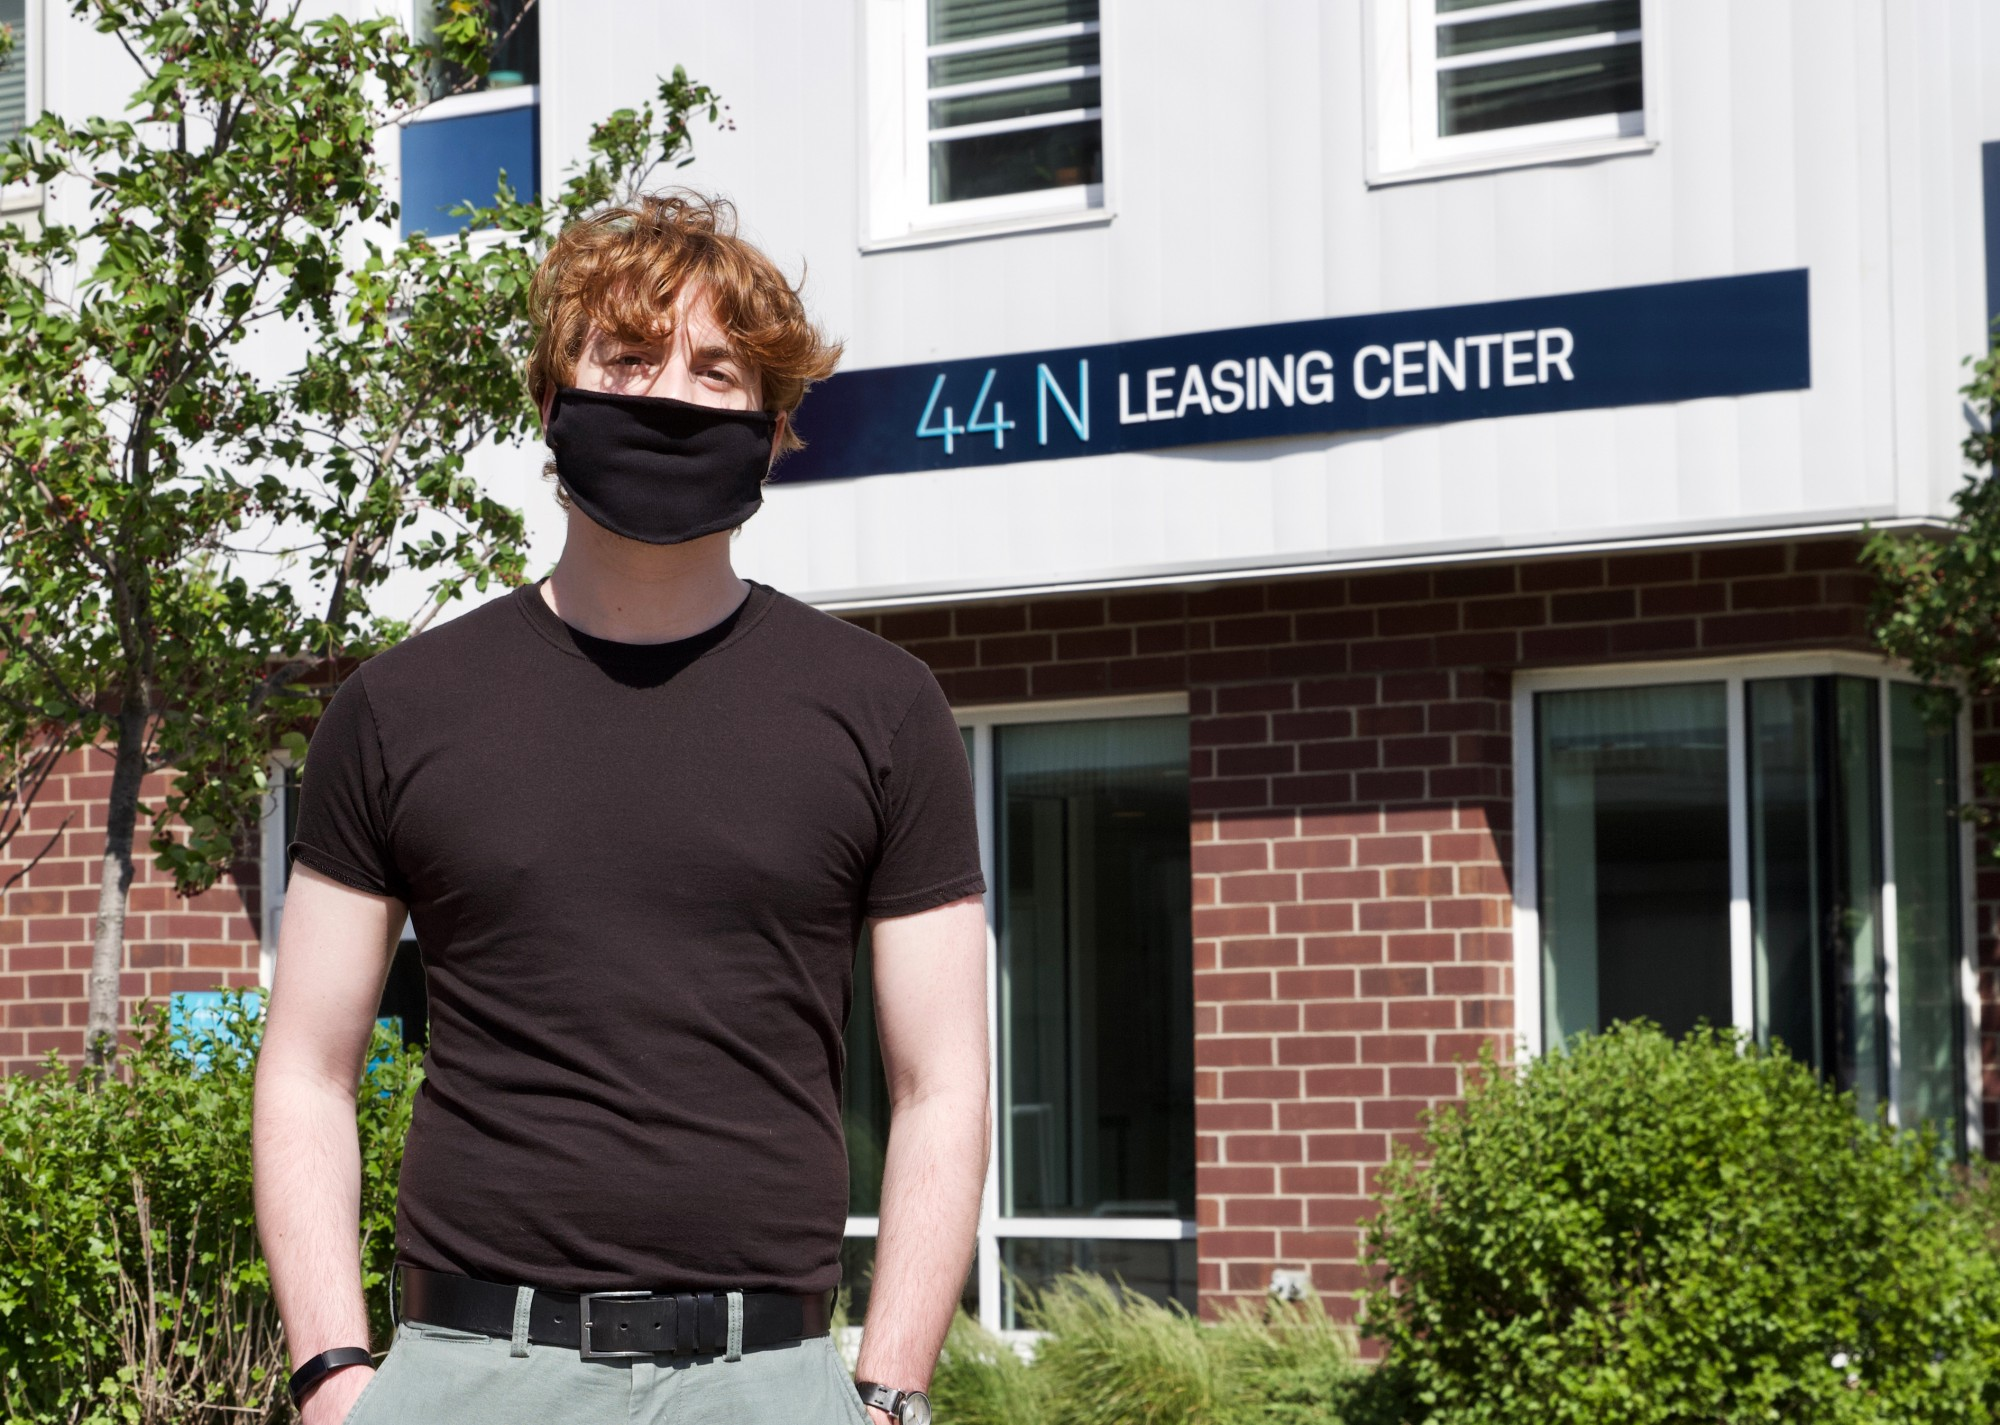 <p>Mark Eckelaert stands in front of 44 North, the apartment building he is residing in, Wednesday, June 17 in Stadium Village. Eckelaert is searching for a short-term lease or sublease to take over for the fall semester.</p>